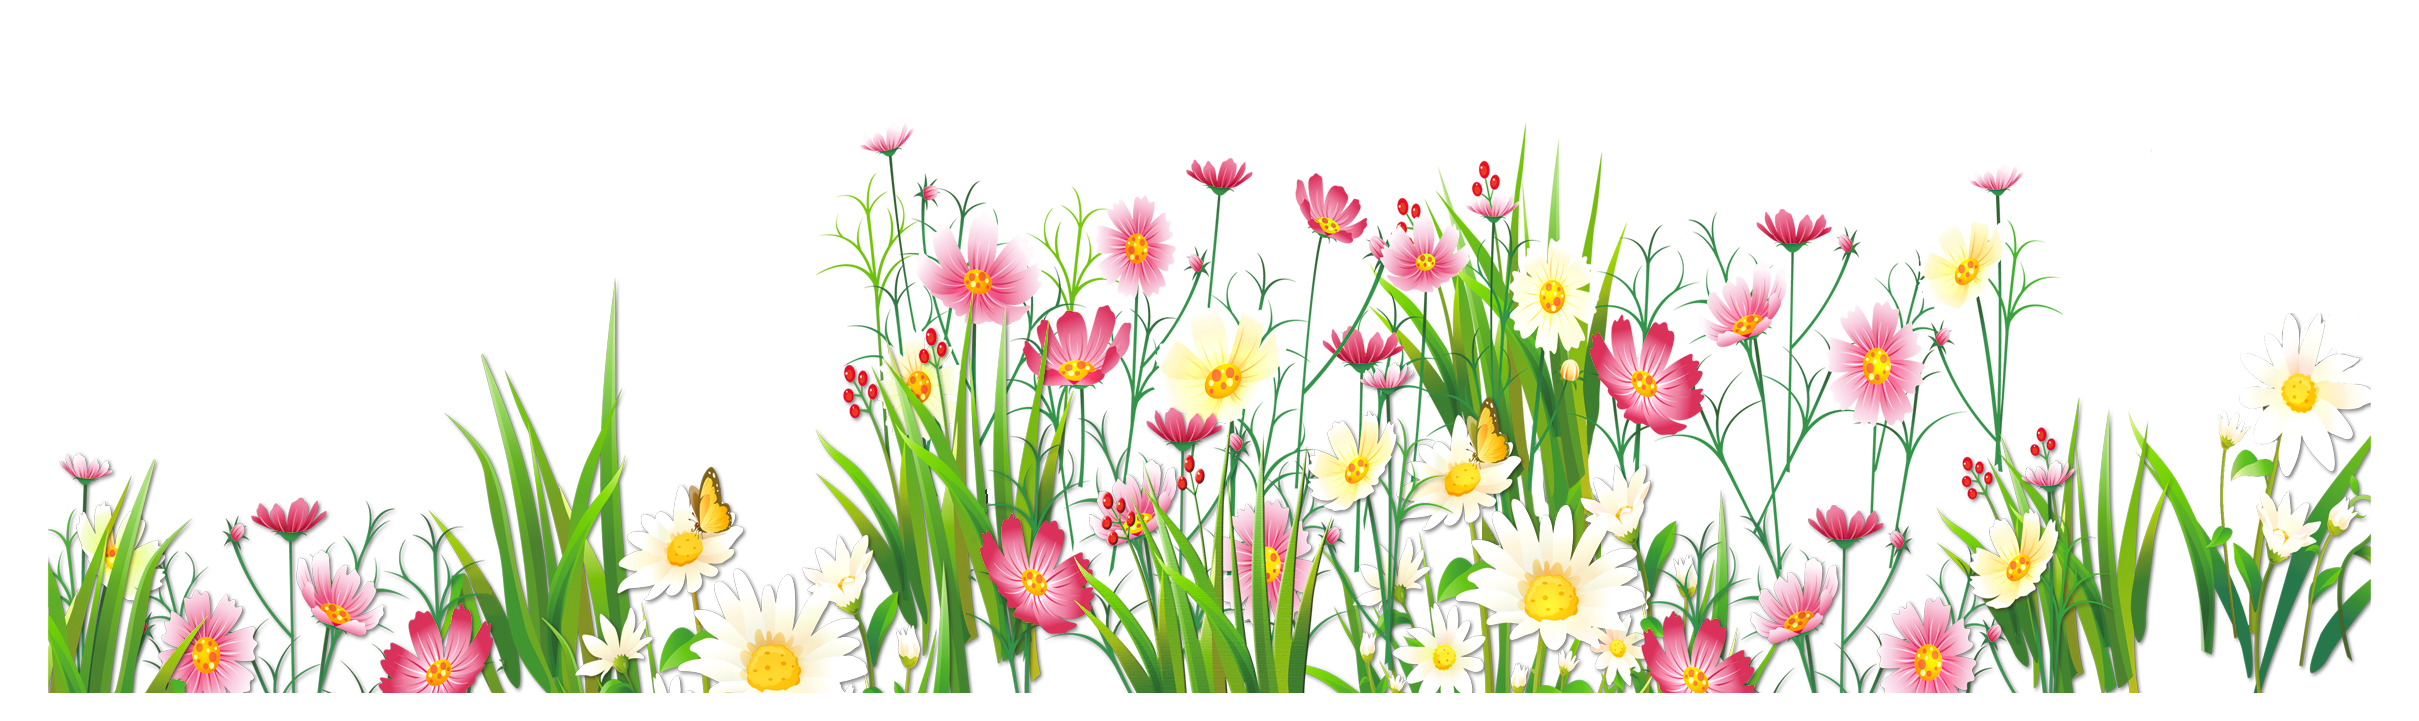 Flowers and grass png. Wet clipart water flower